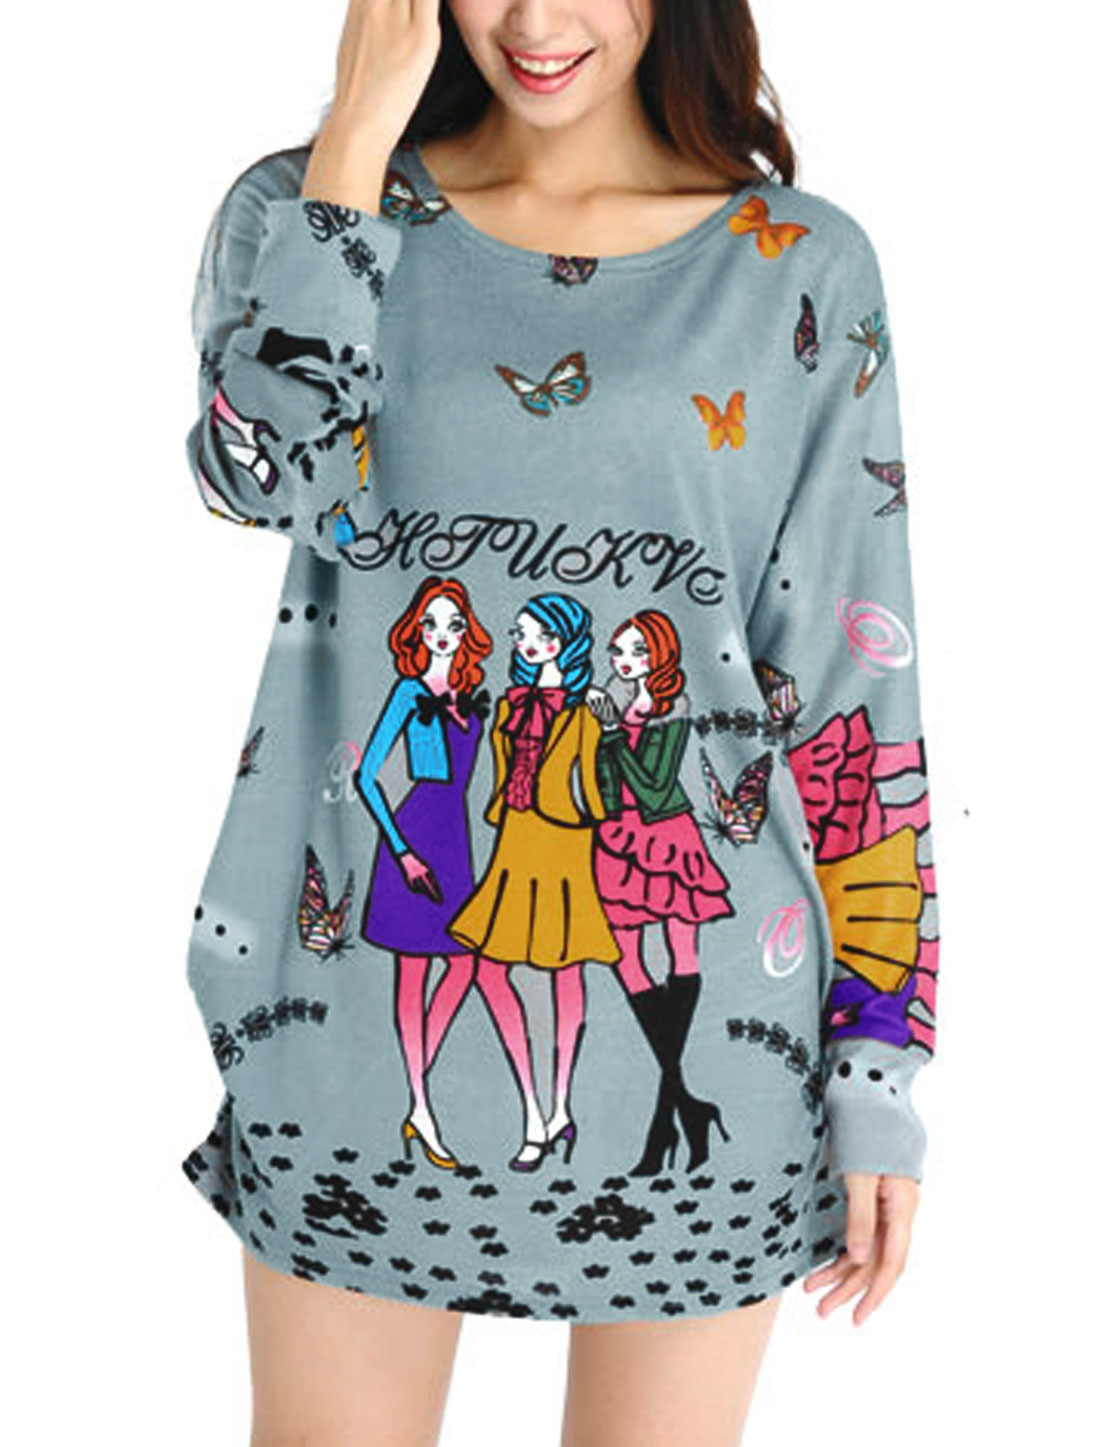 Lady Butterfly Letters Cartoon Pattern Shirred Side Leisure Tunic Knit Shirt Light Gray L